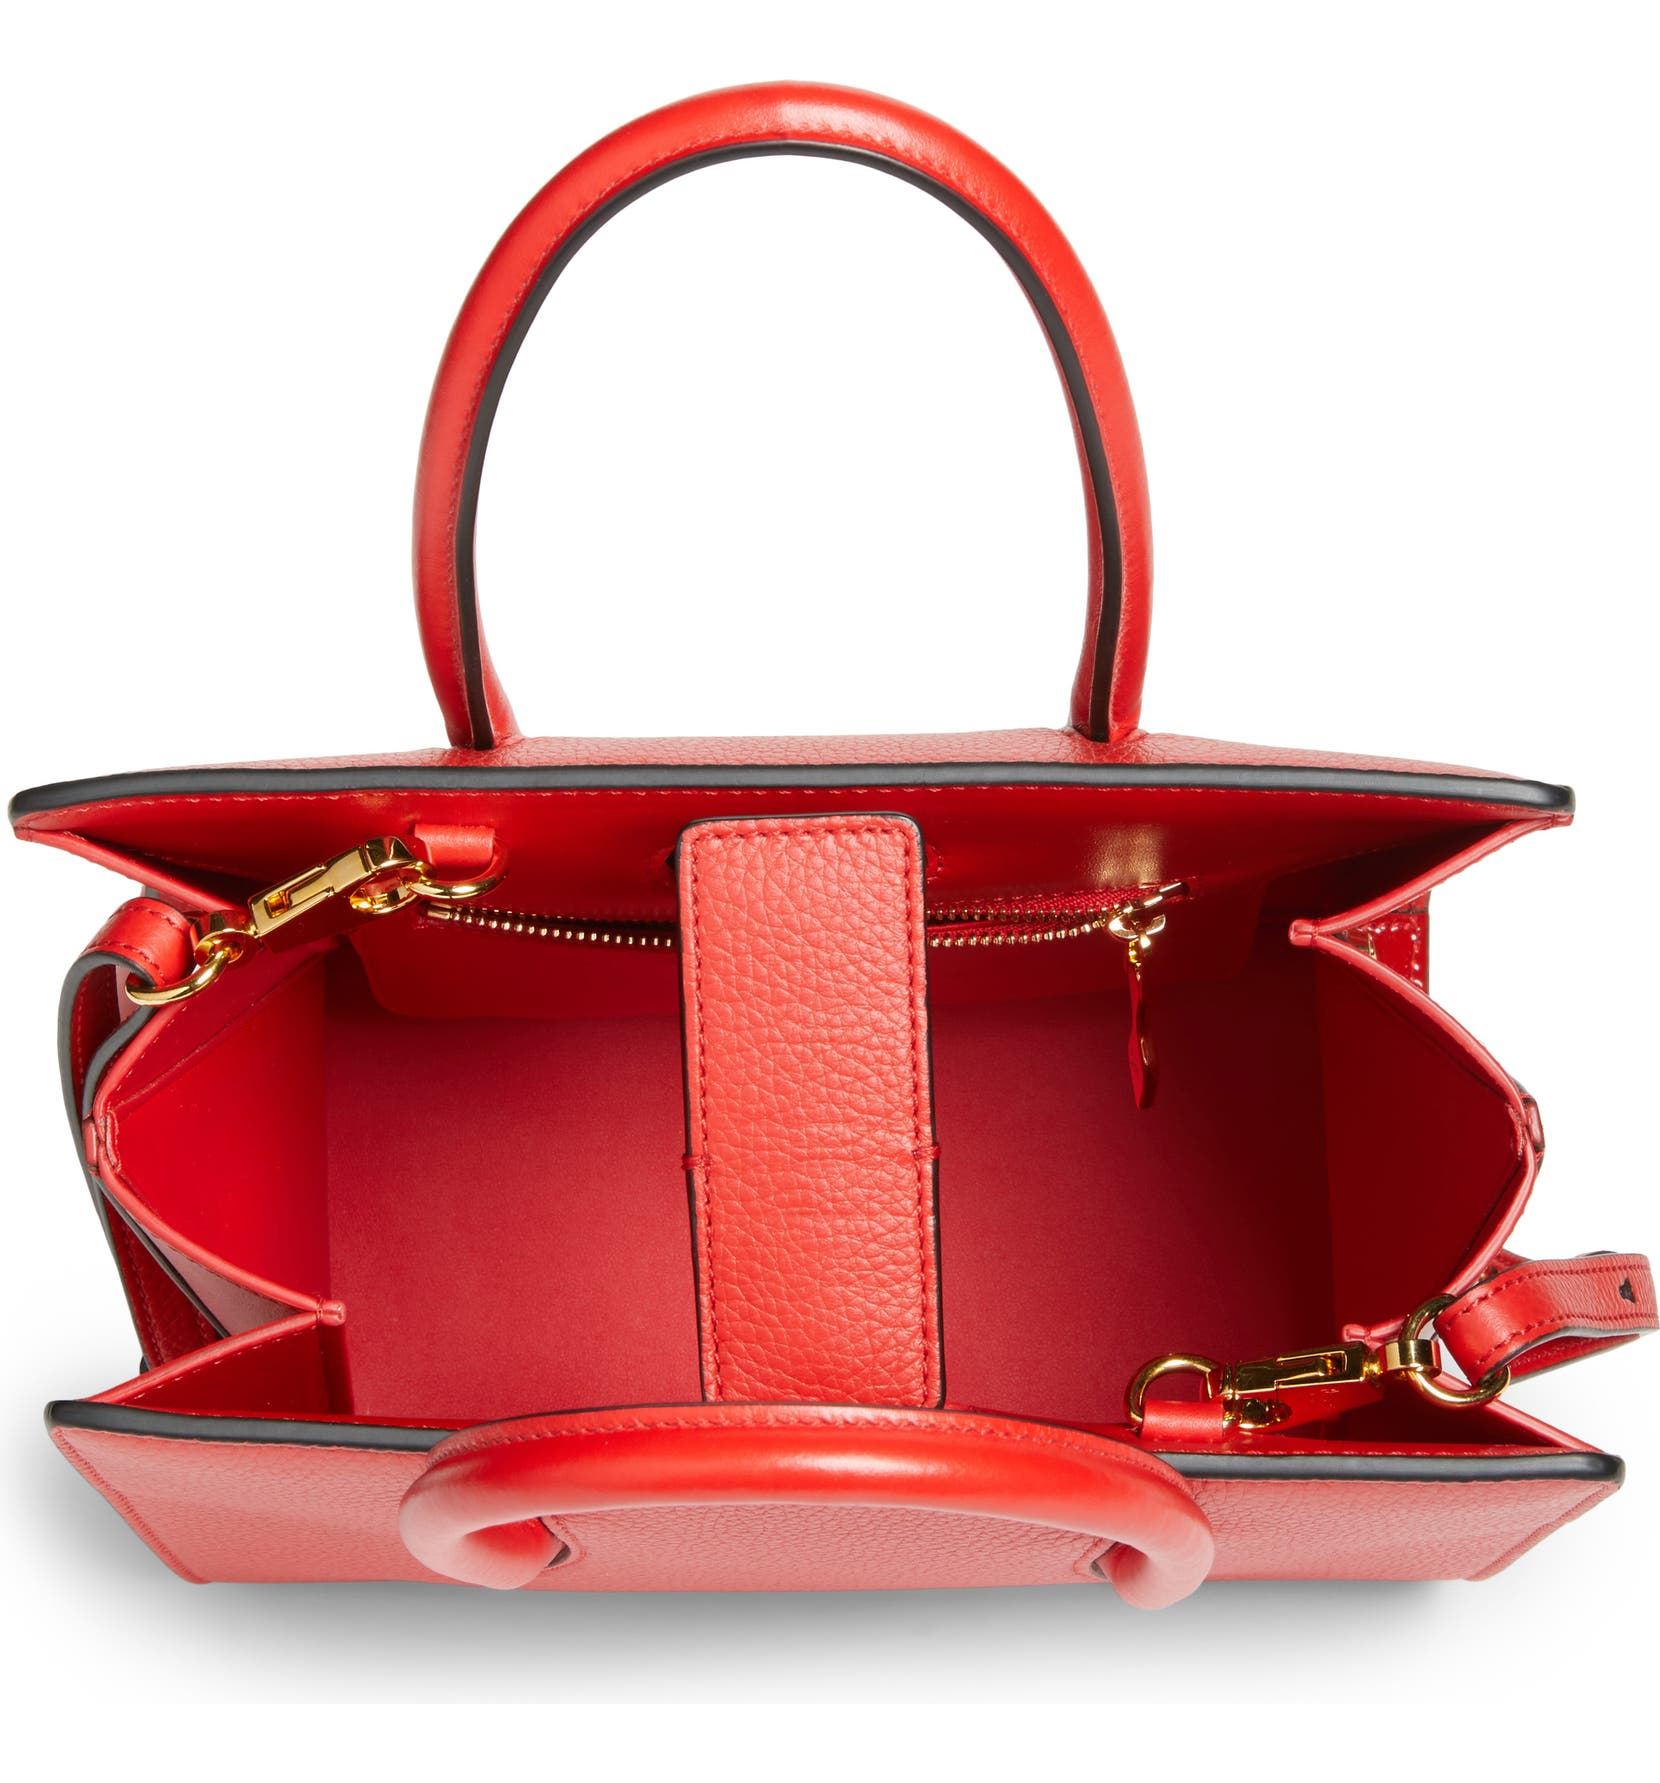 87c254a9fe2 Christian Louboutin Small Paloma Empire Leather Tote | Nordstrom